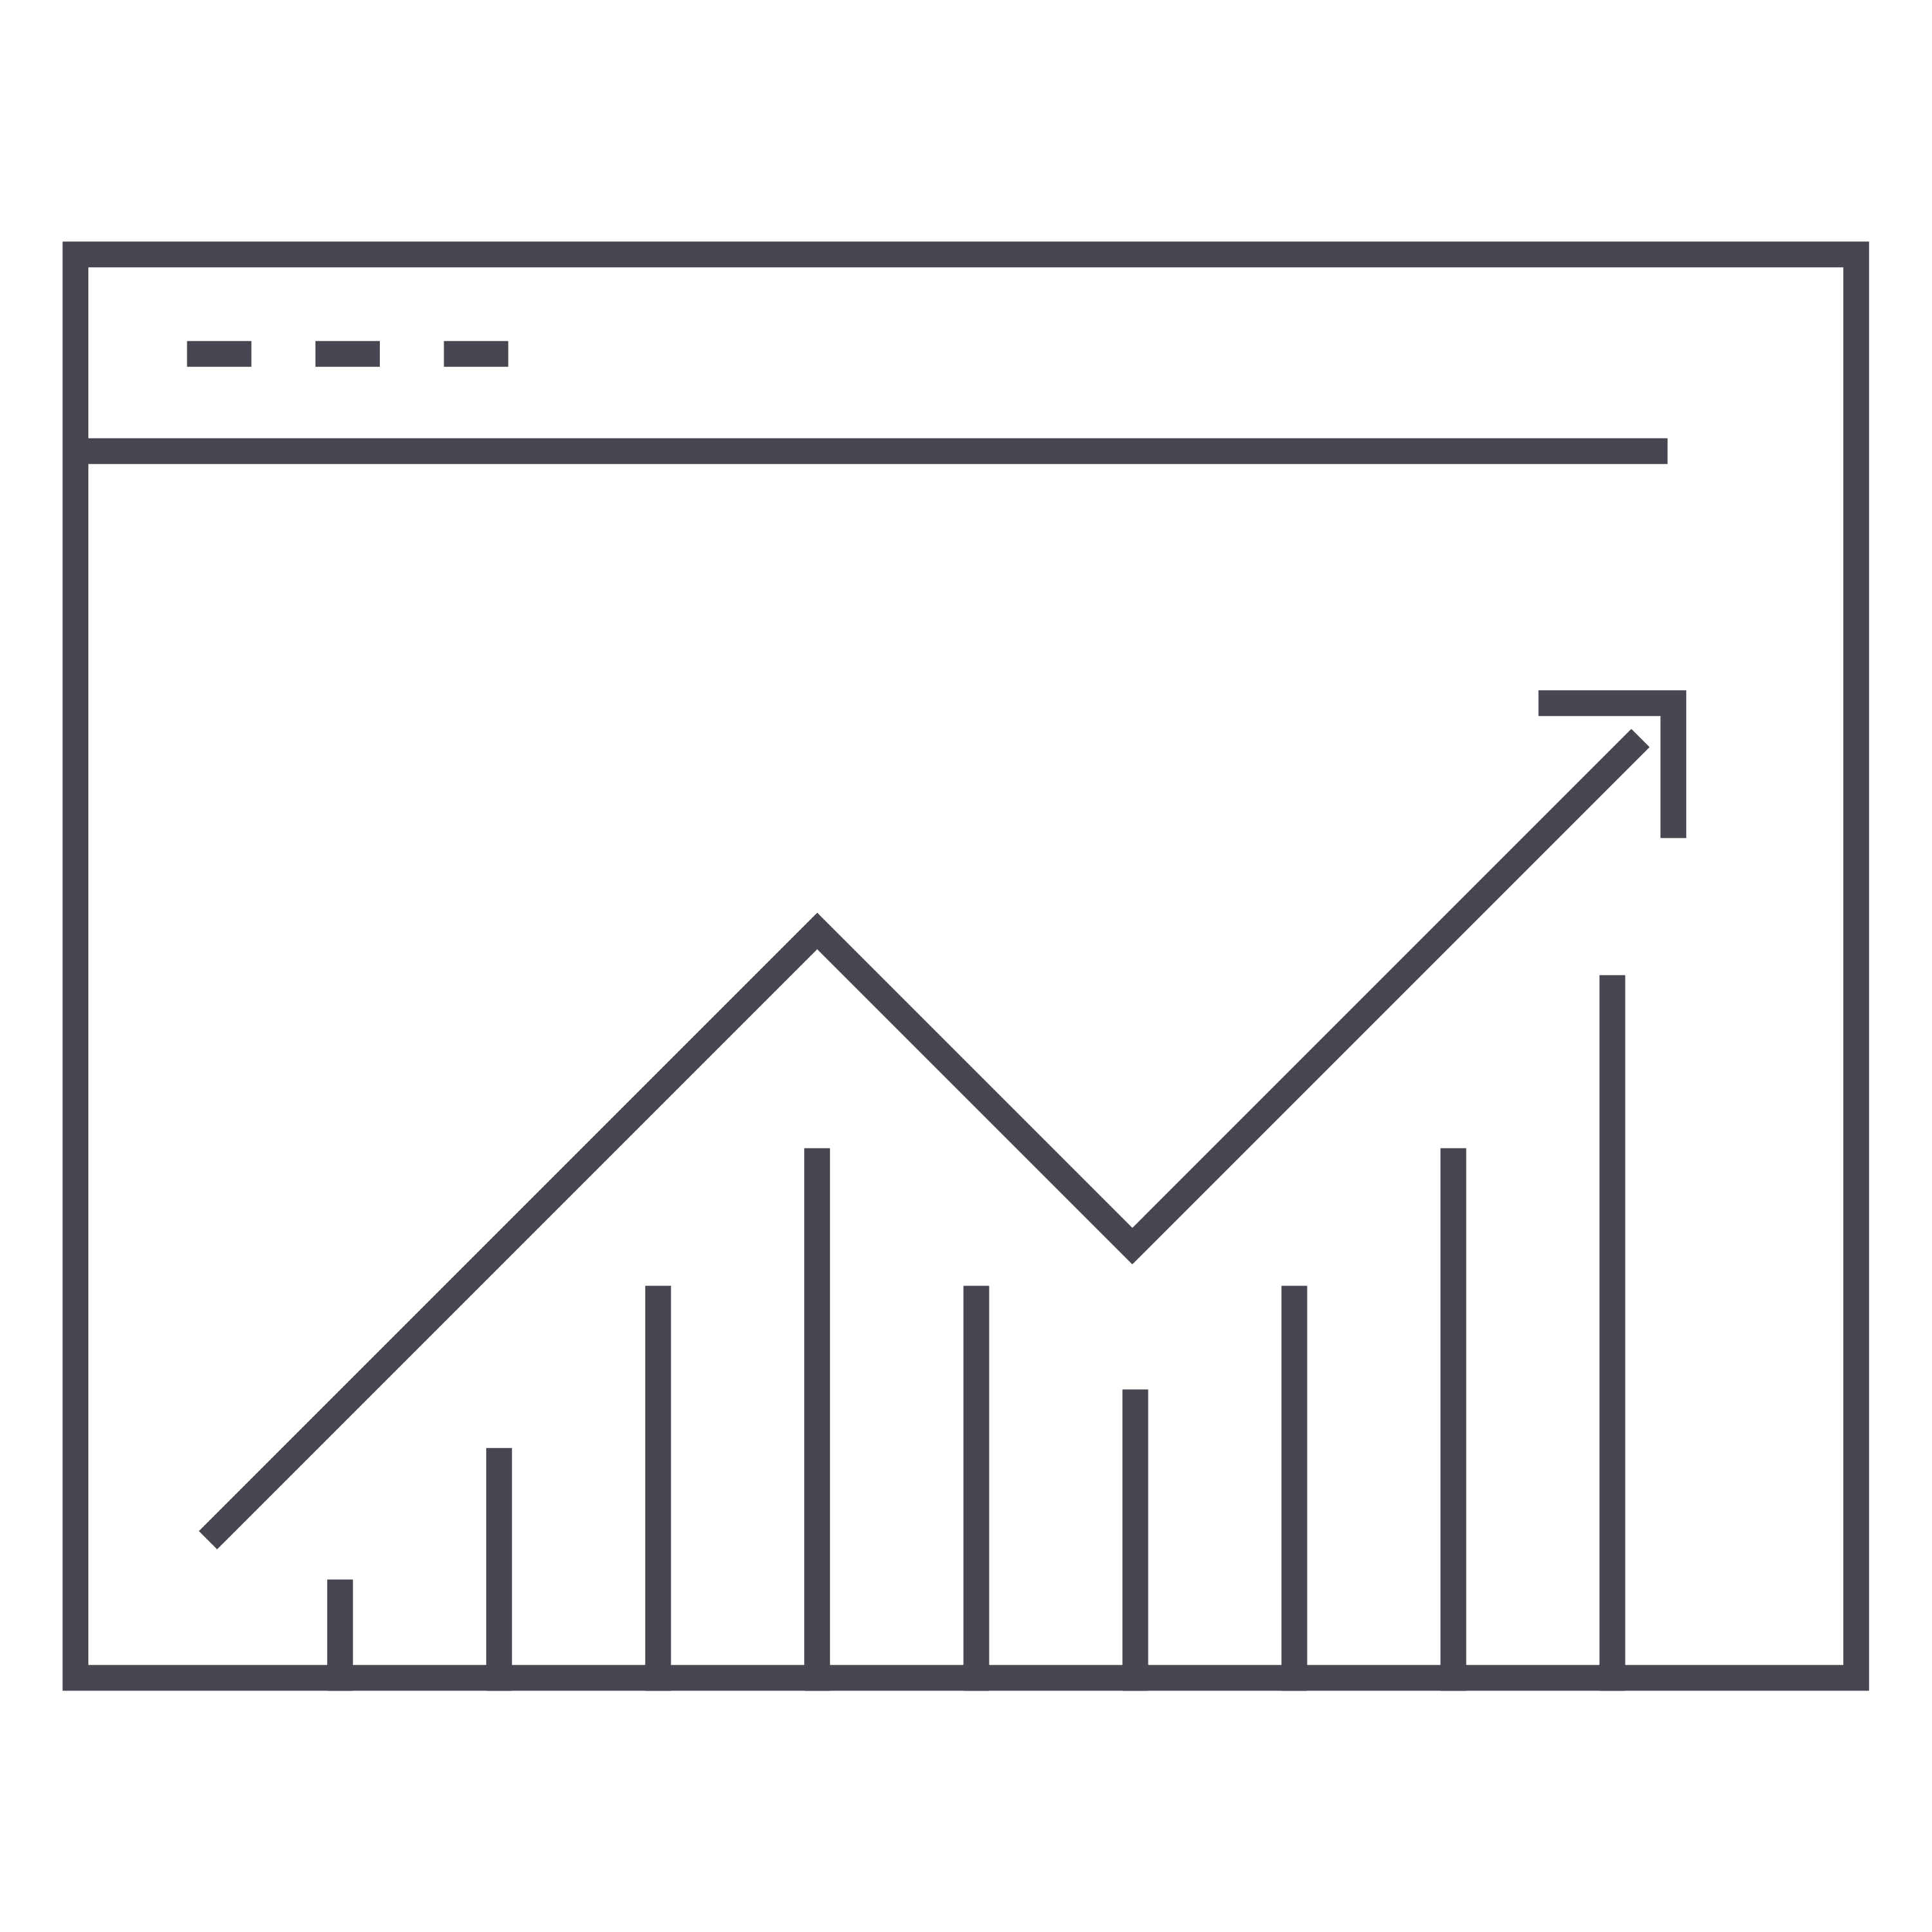 audience_growth_icon